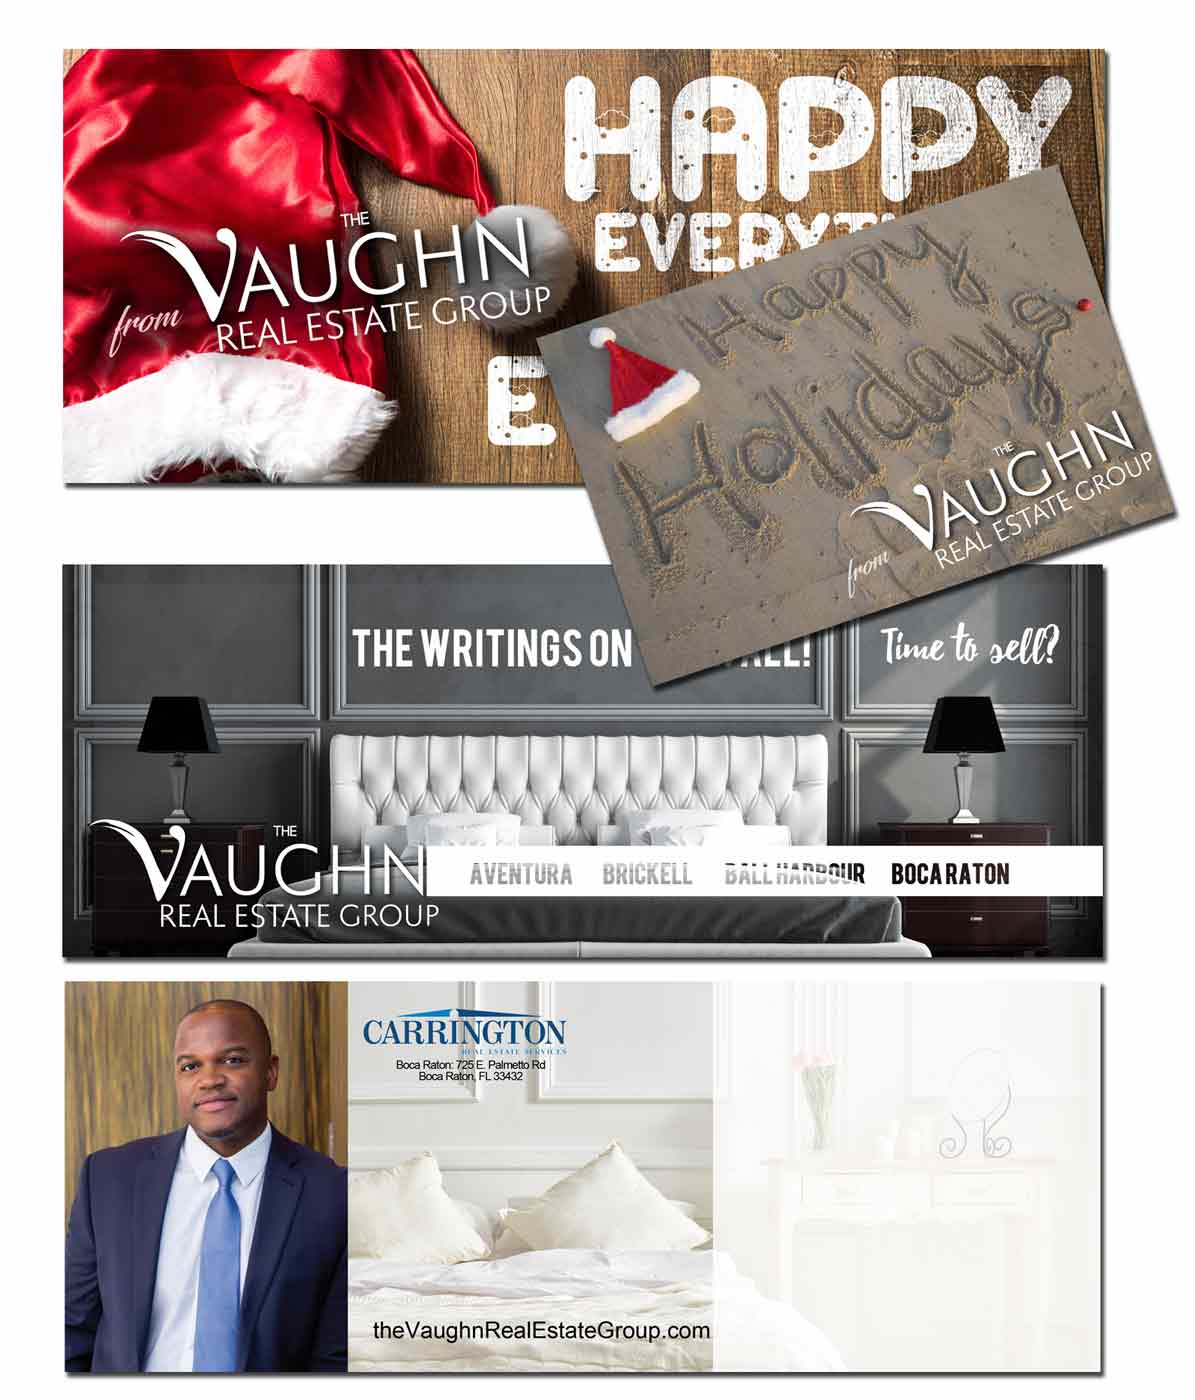 Real Estate Every Day Direct Mail Marketing Pieces for the Vaughn Real Estate Group